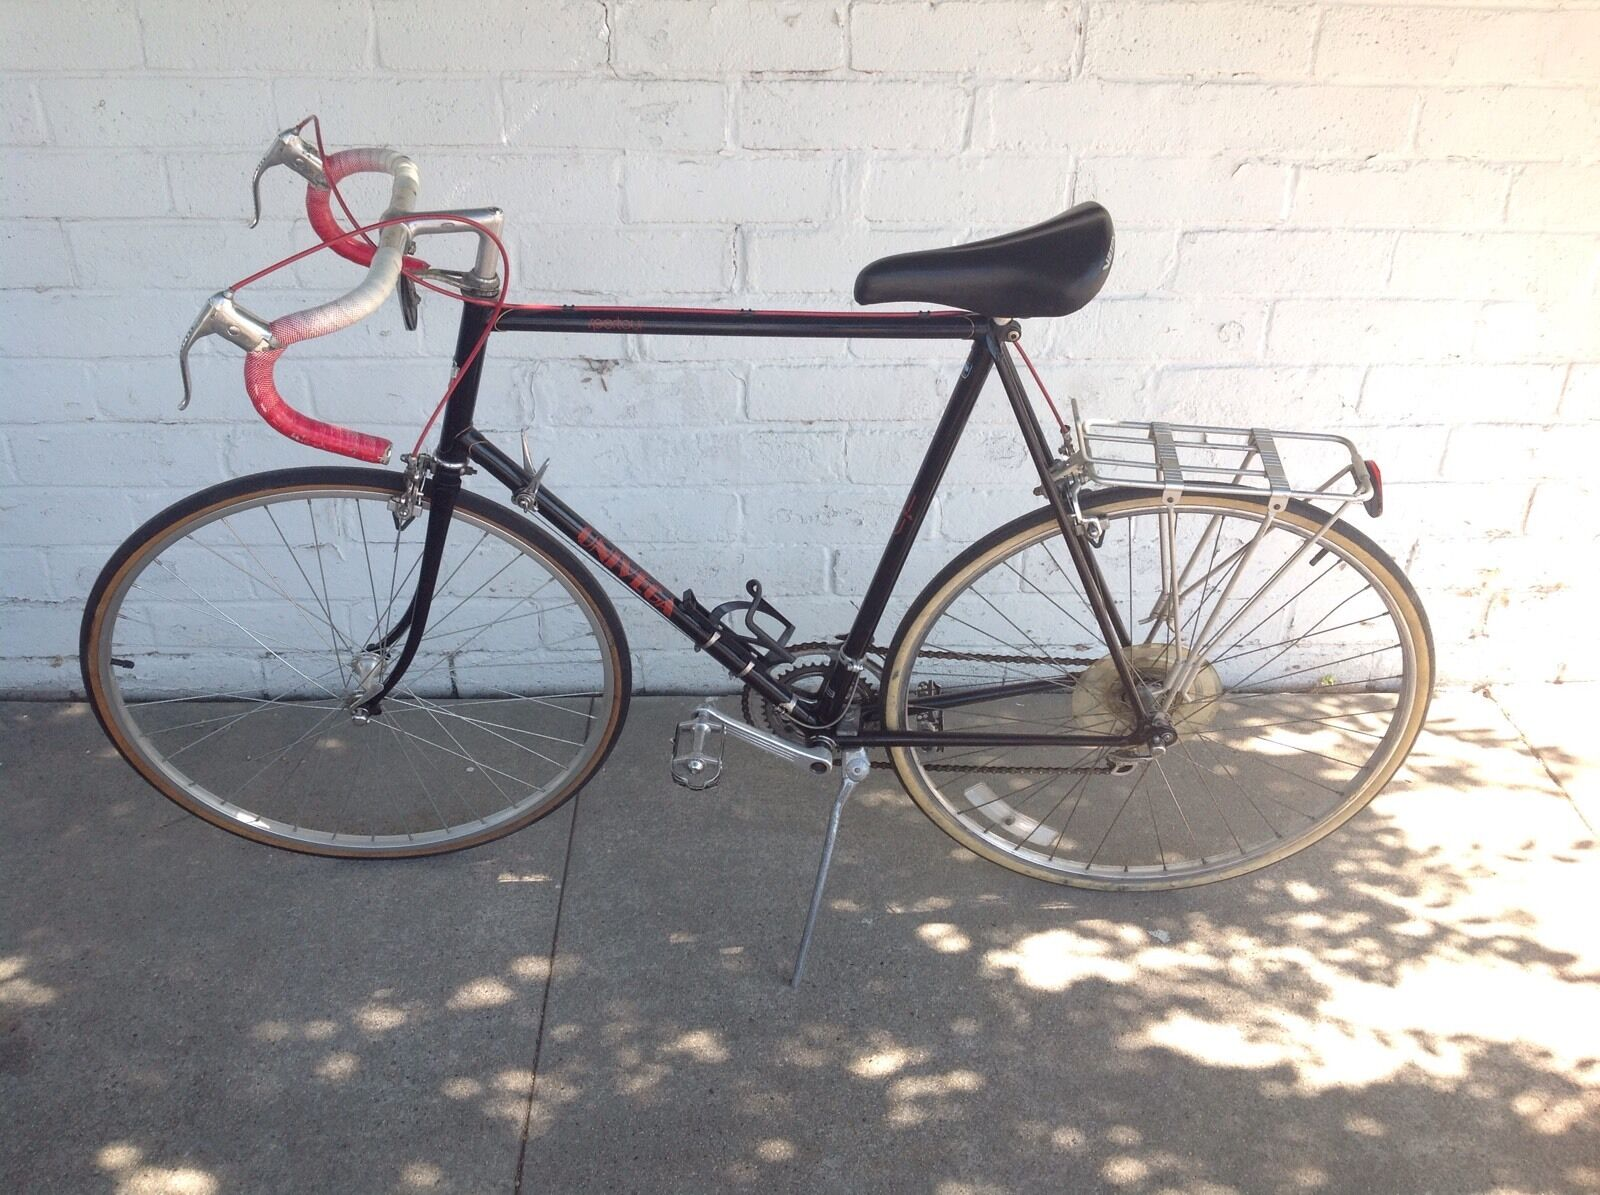 Touring Road Bike 1979 Univega  Sportour 64cm Triple Butted Cro Mo Made in Japan  with 100% quality and %100 service